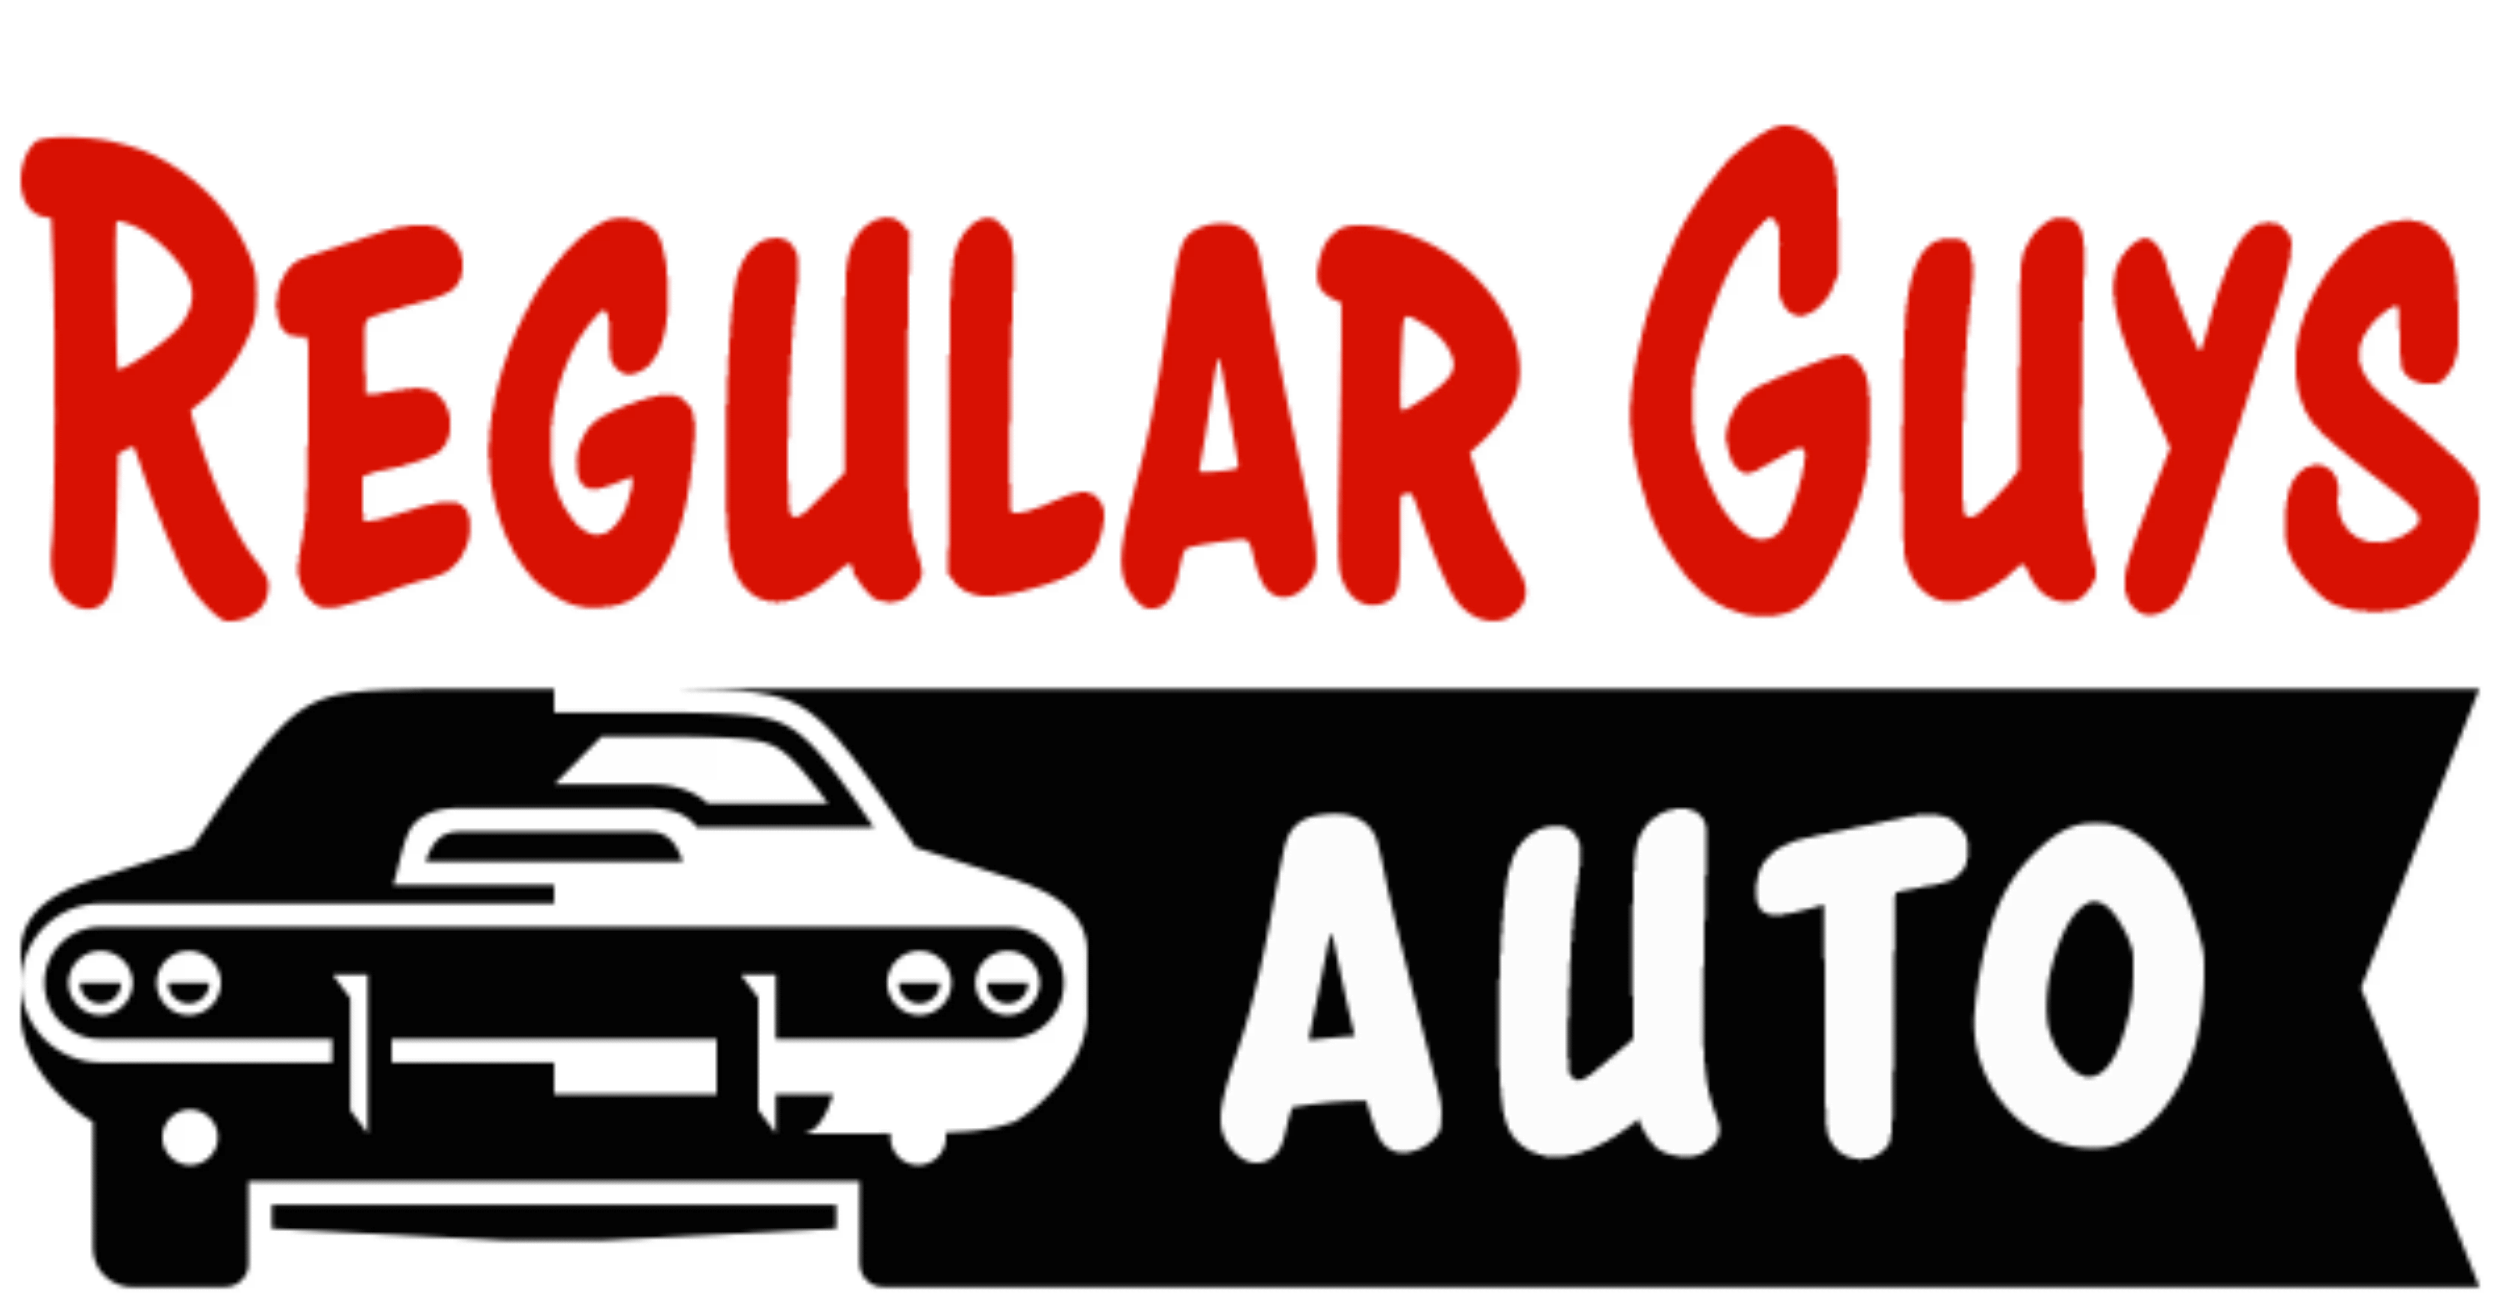 Hours by Regular Guys Auto of Macon GA providing clean and